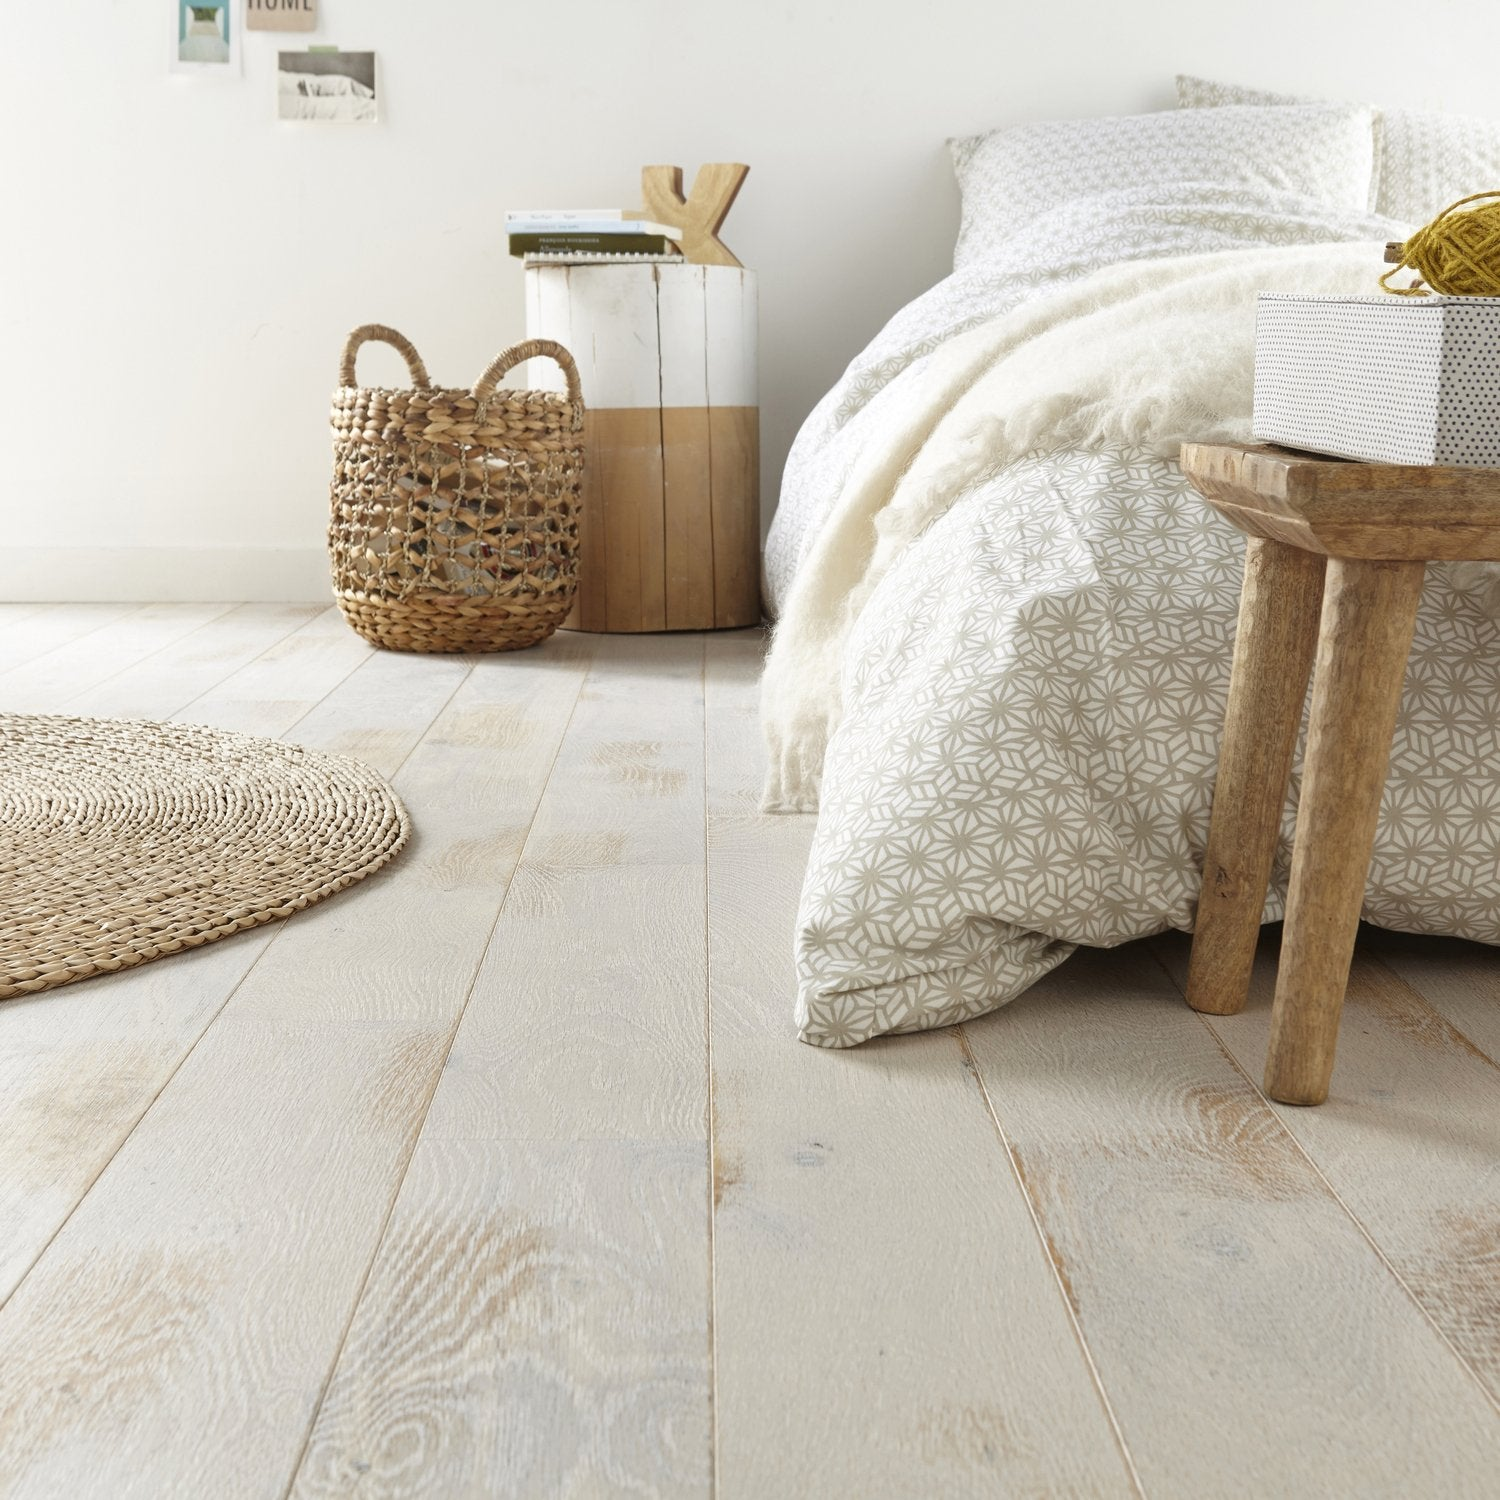 Leroy merlin ponceuse parquet affordable location de - Location ponceuse parquet leroy merlin ...